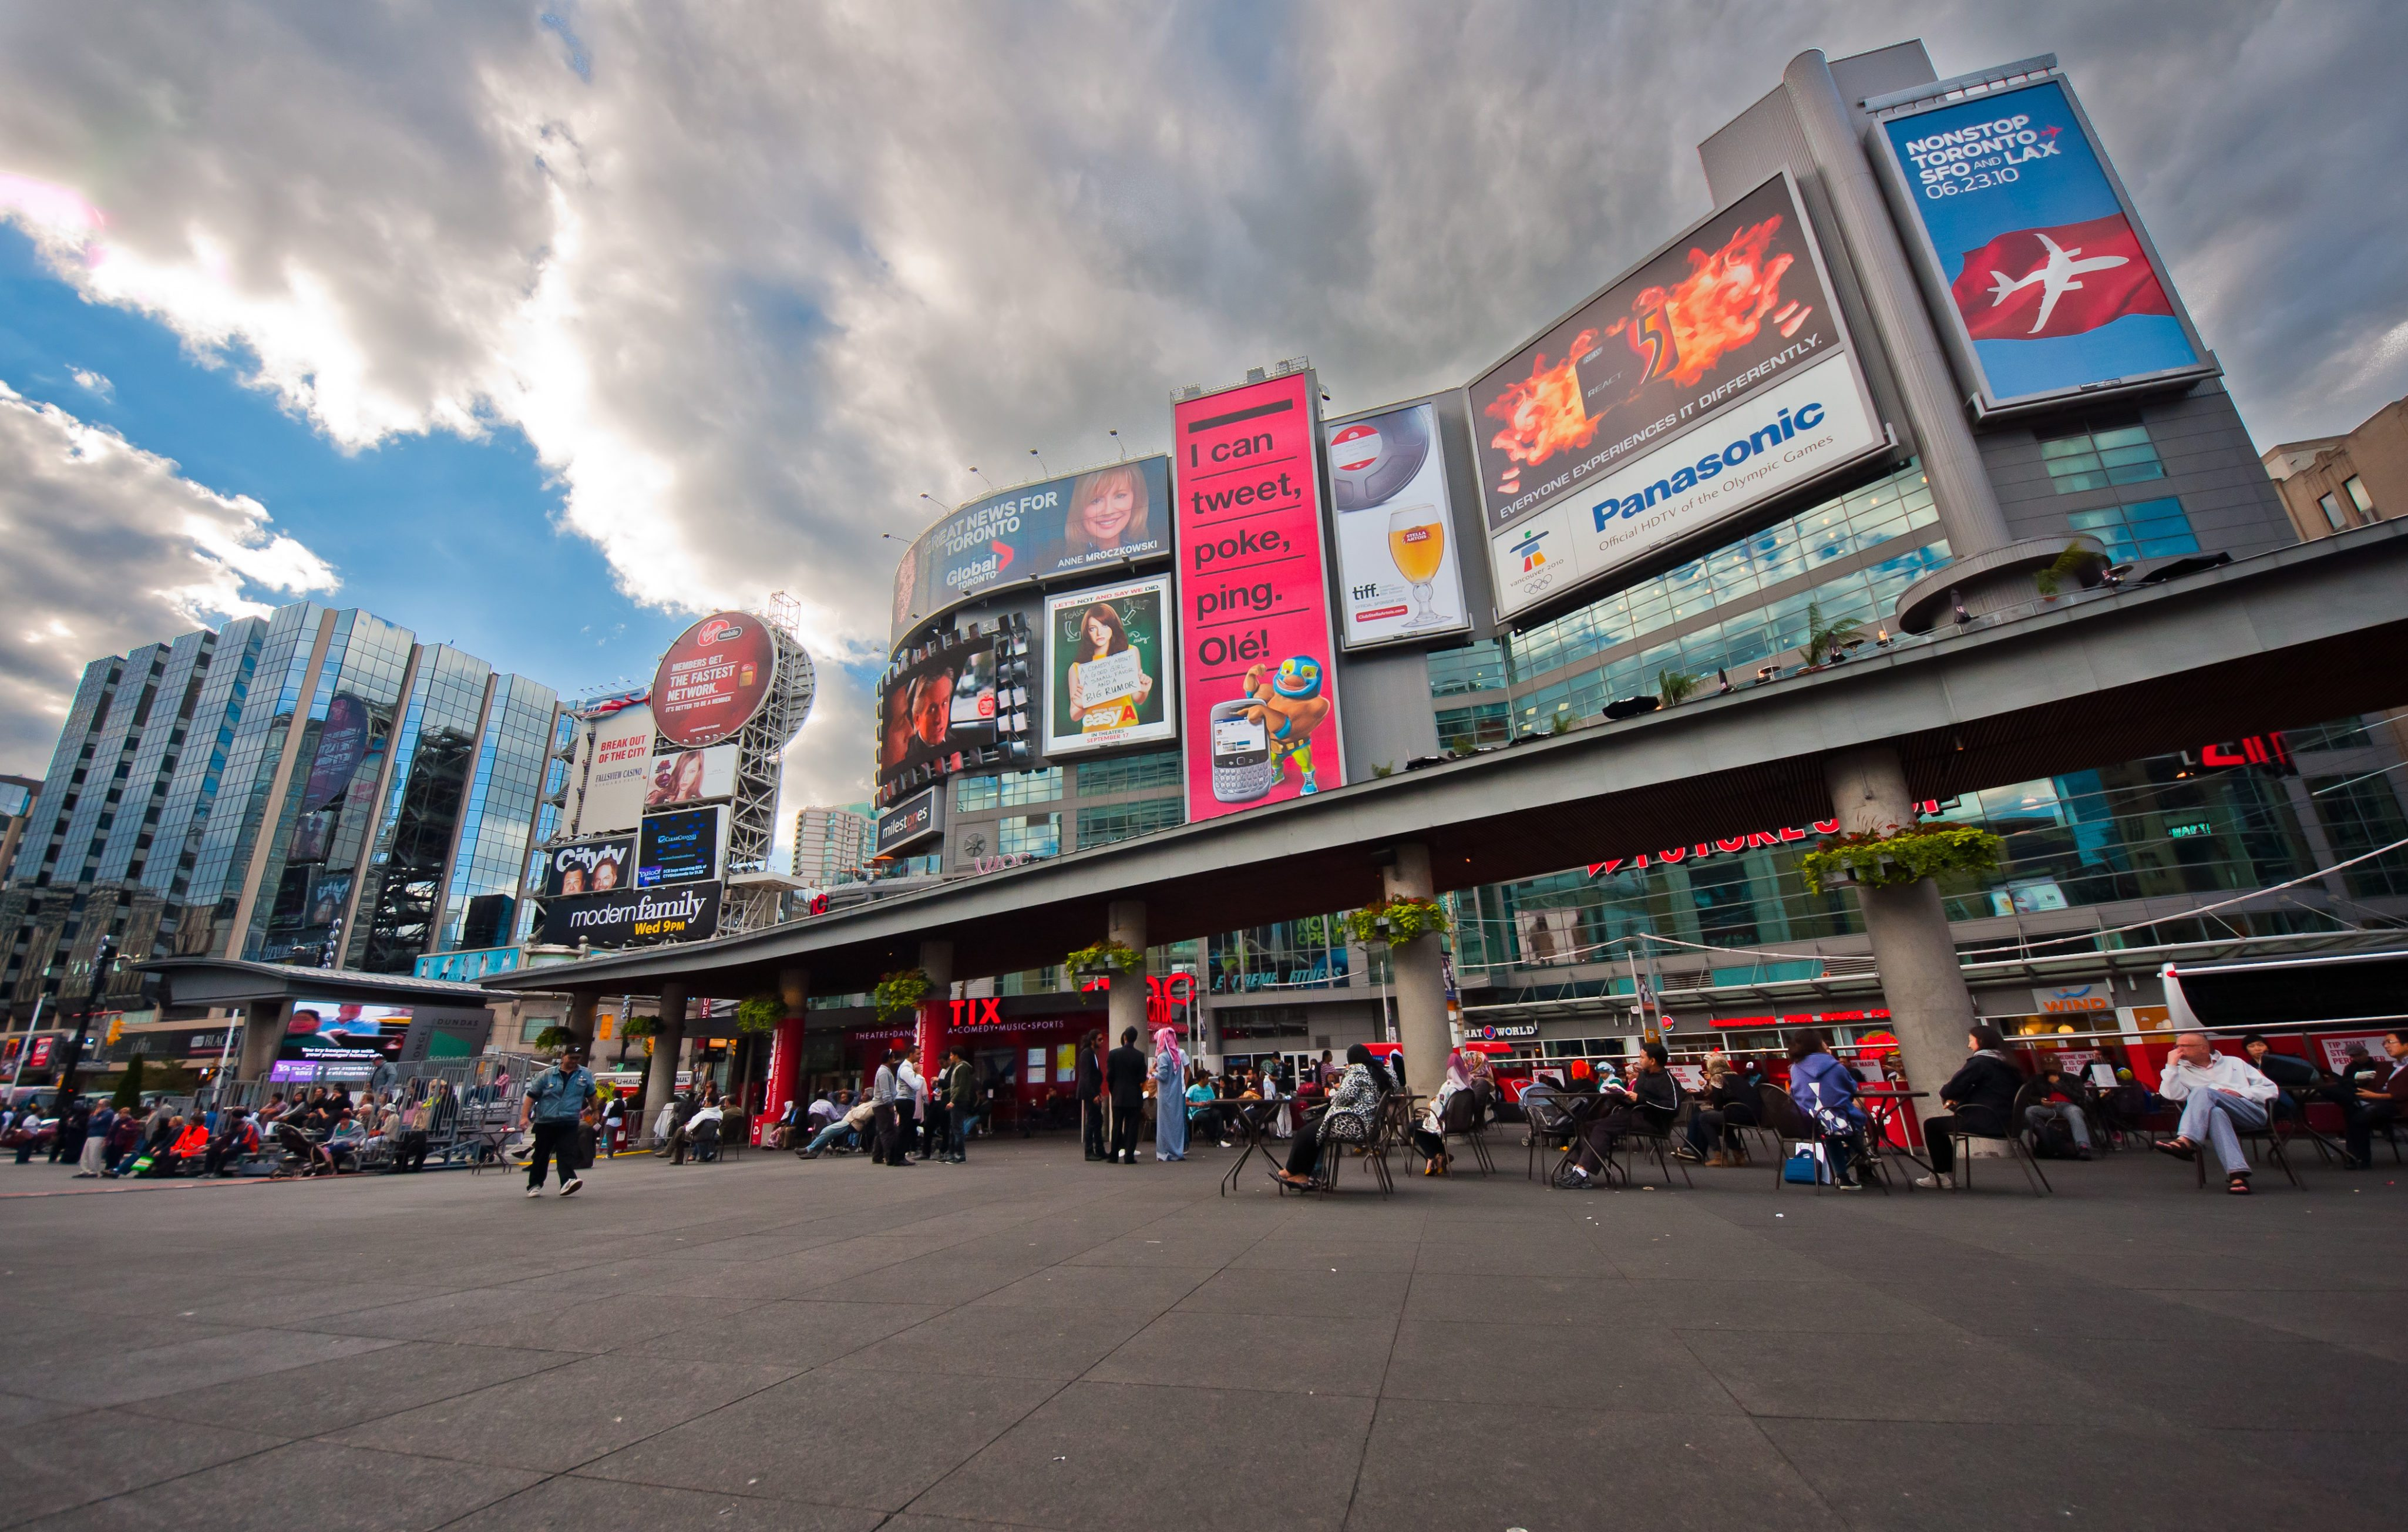 Why Yonge-Dundas Square Struggles as Public Space